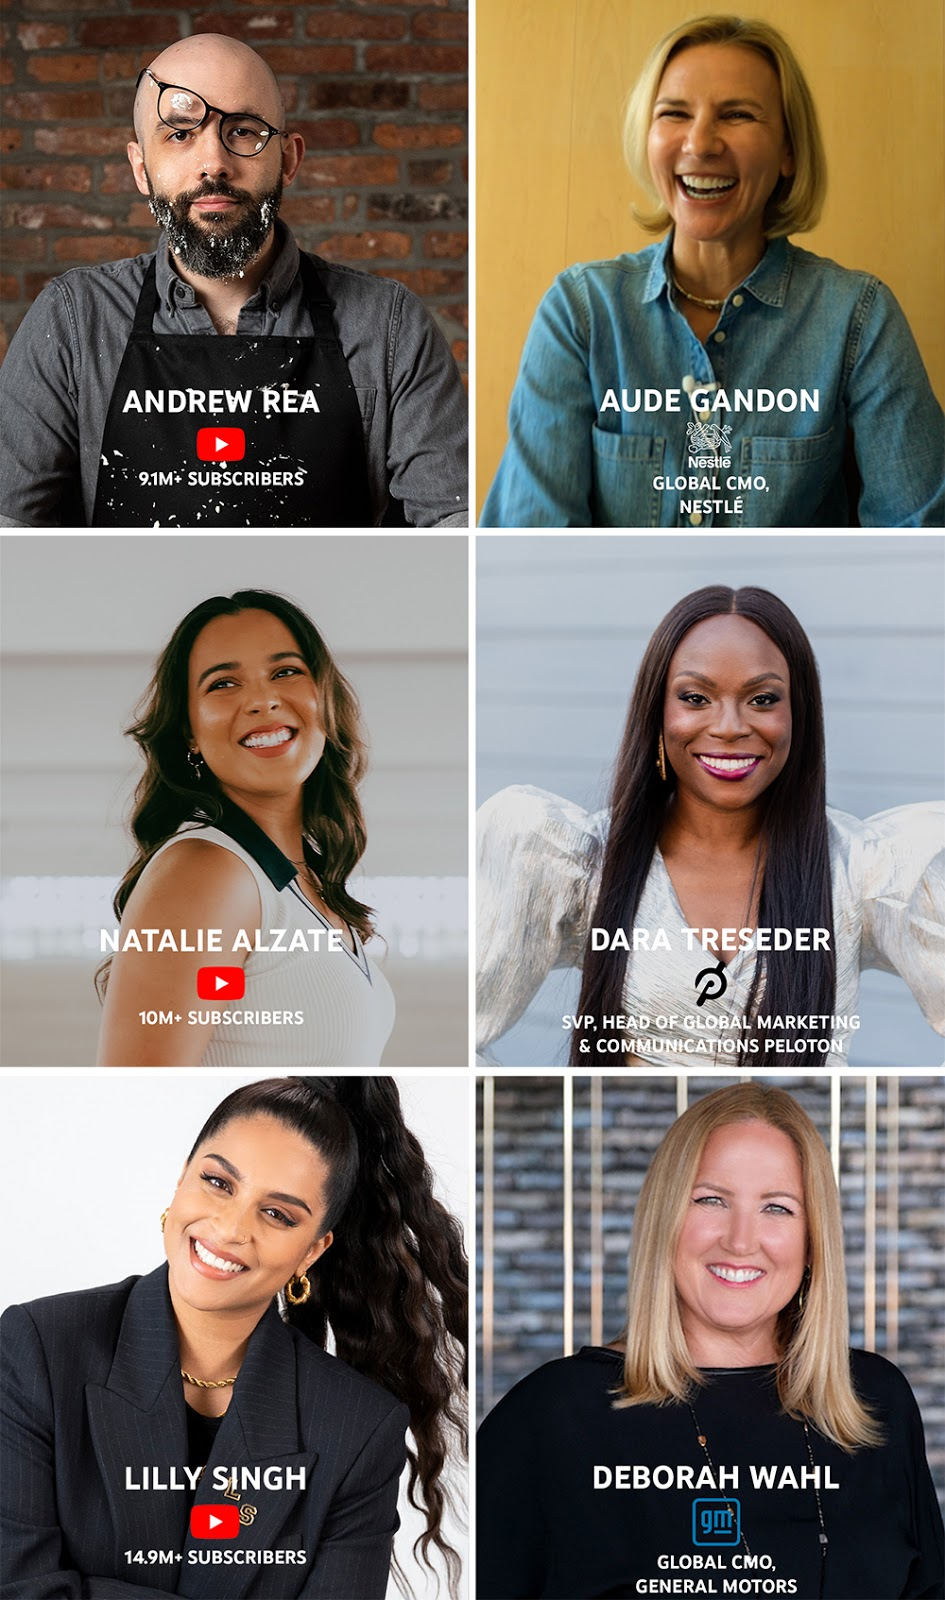 Leading CMOs learn from top YouTube creators on how to adapt their marketing playbook